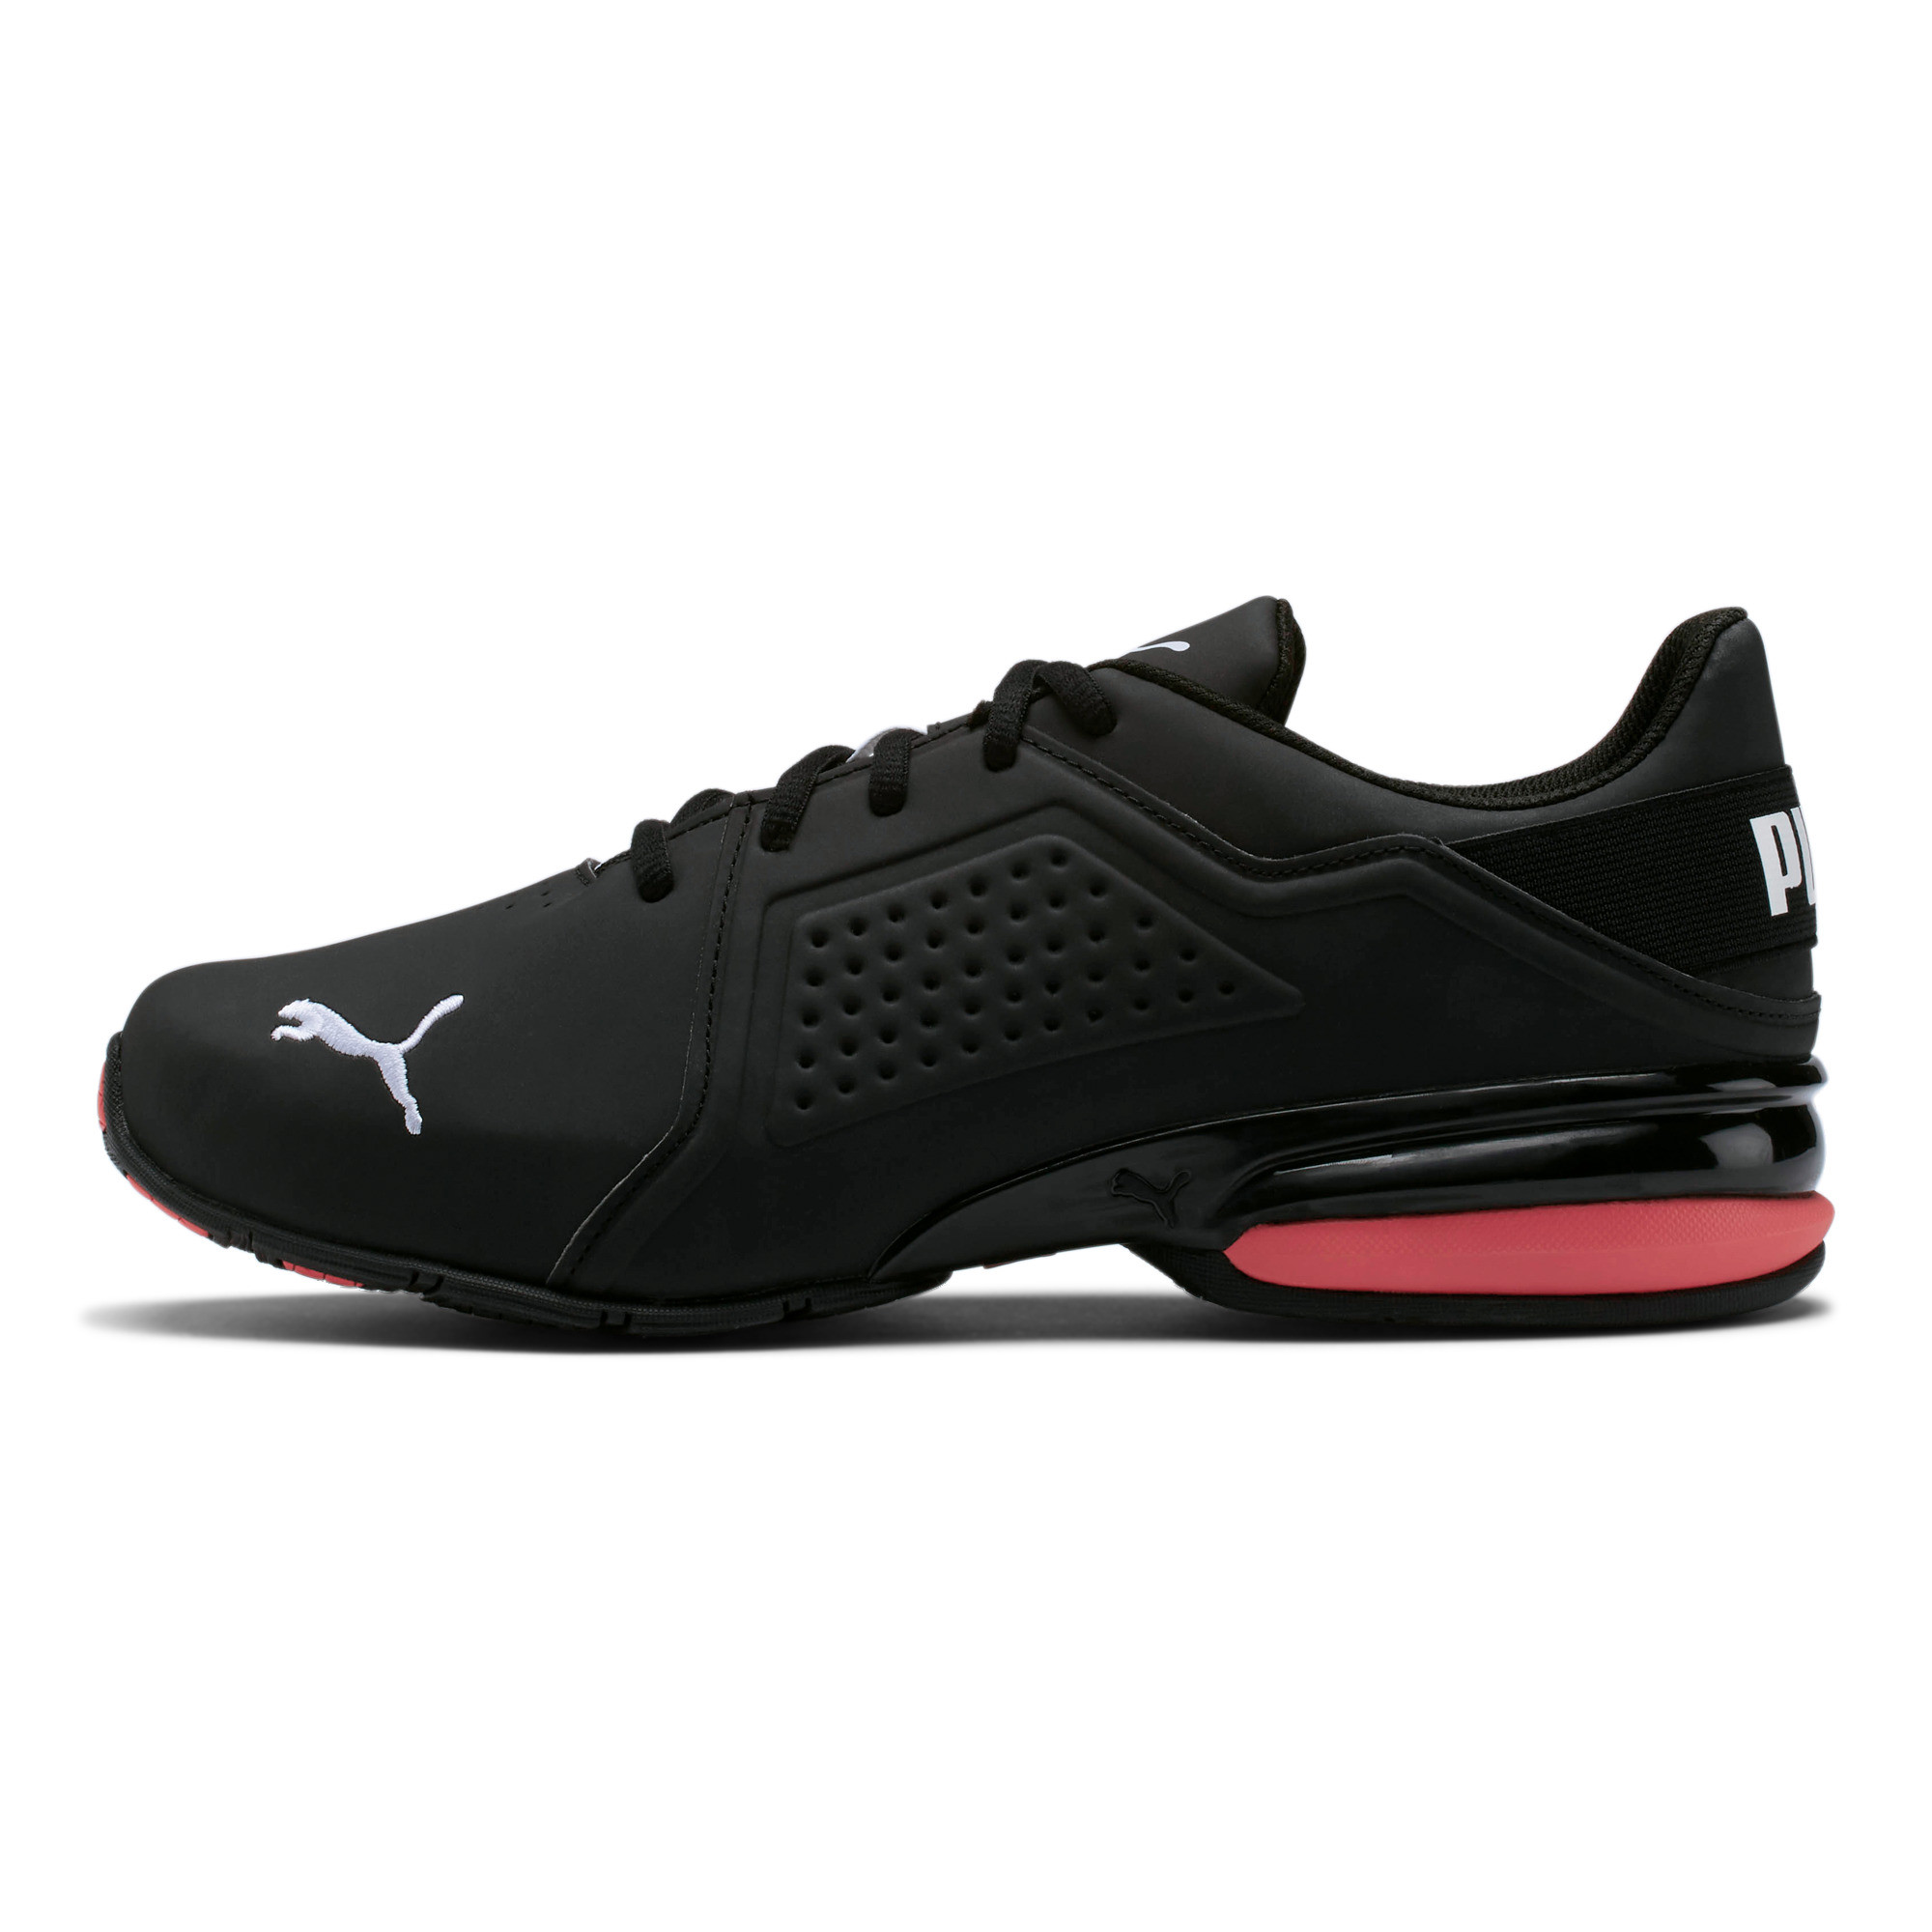 thumbnail 4 - PUMA Men's Viz Runner Training Shoes